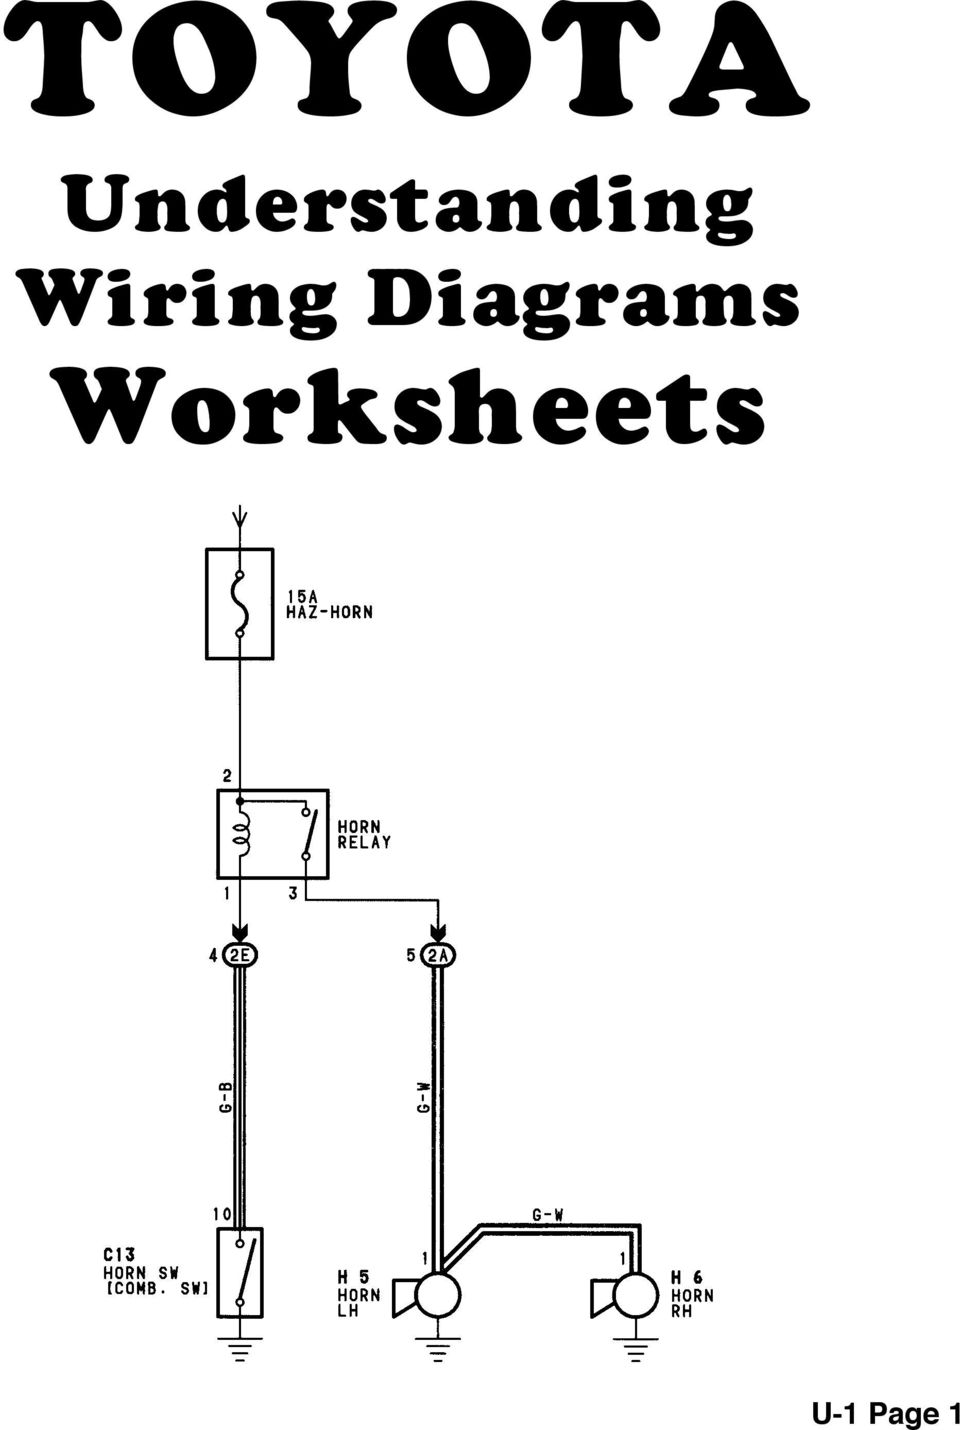 hight resolution of 4 understanding toyota wiring diagrams information 1 reading toyota electrical wiring diagrams u 1 page 2